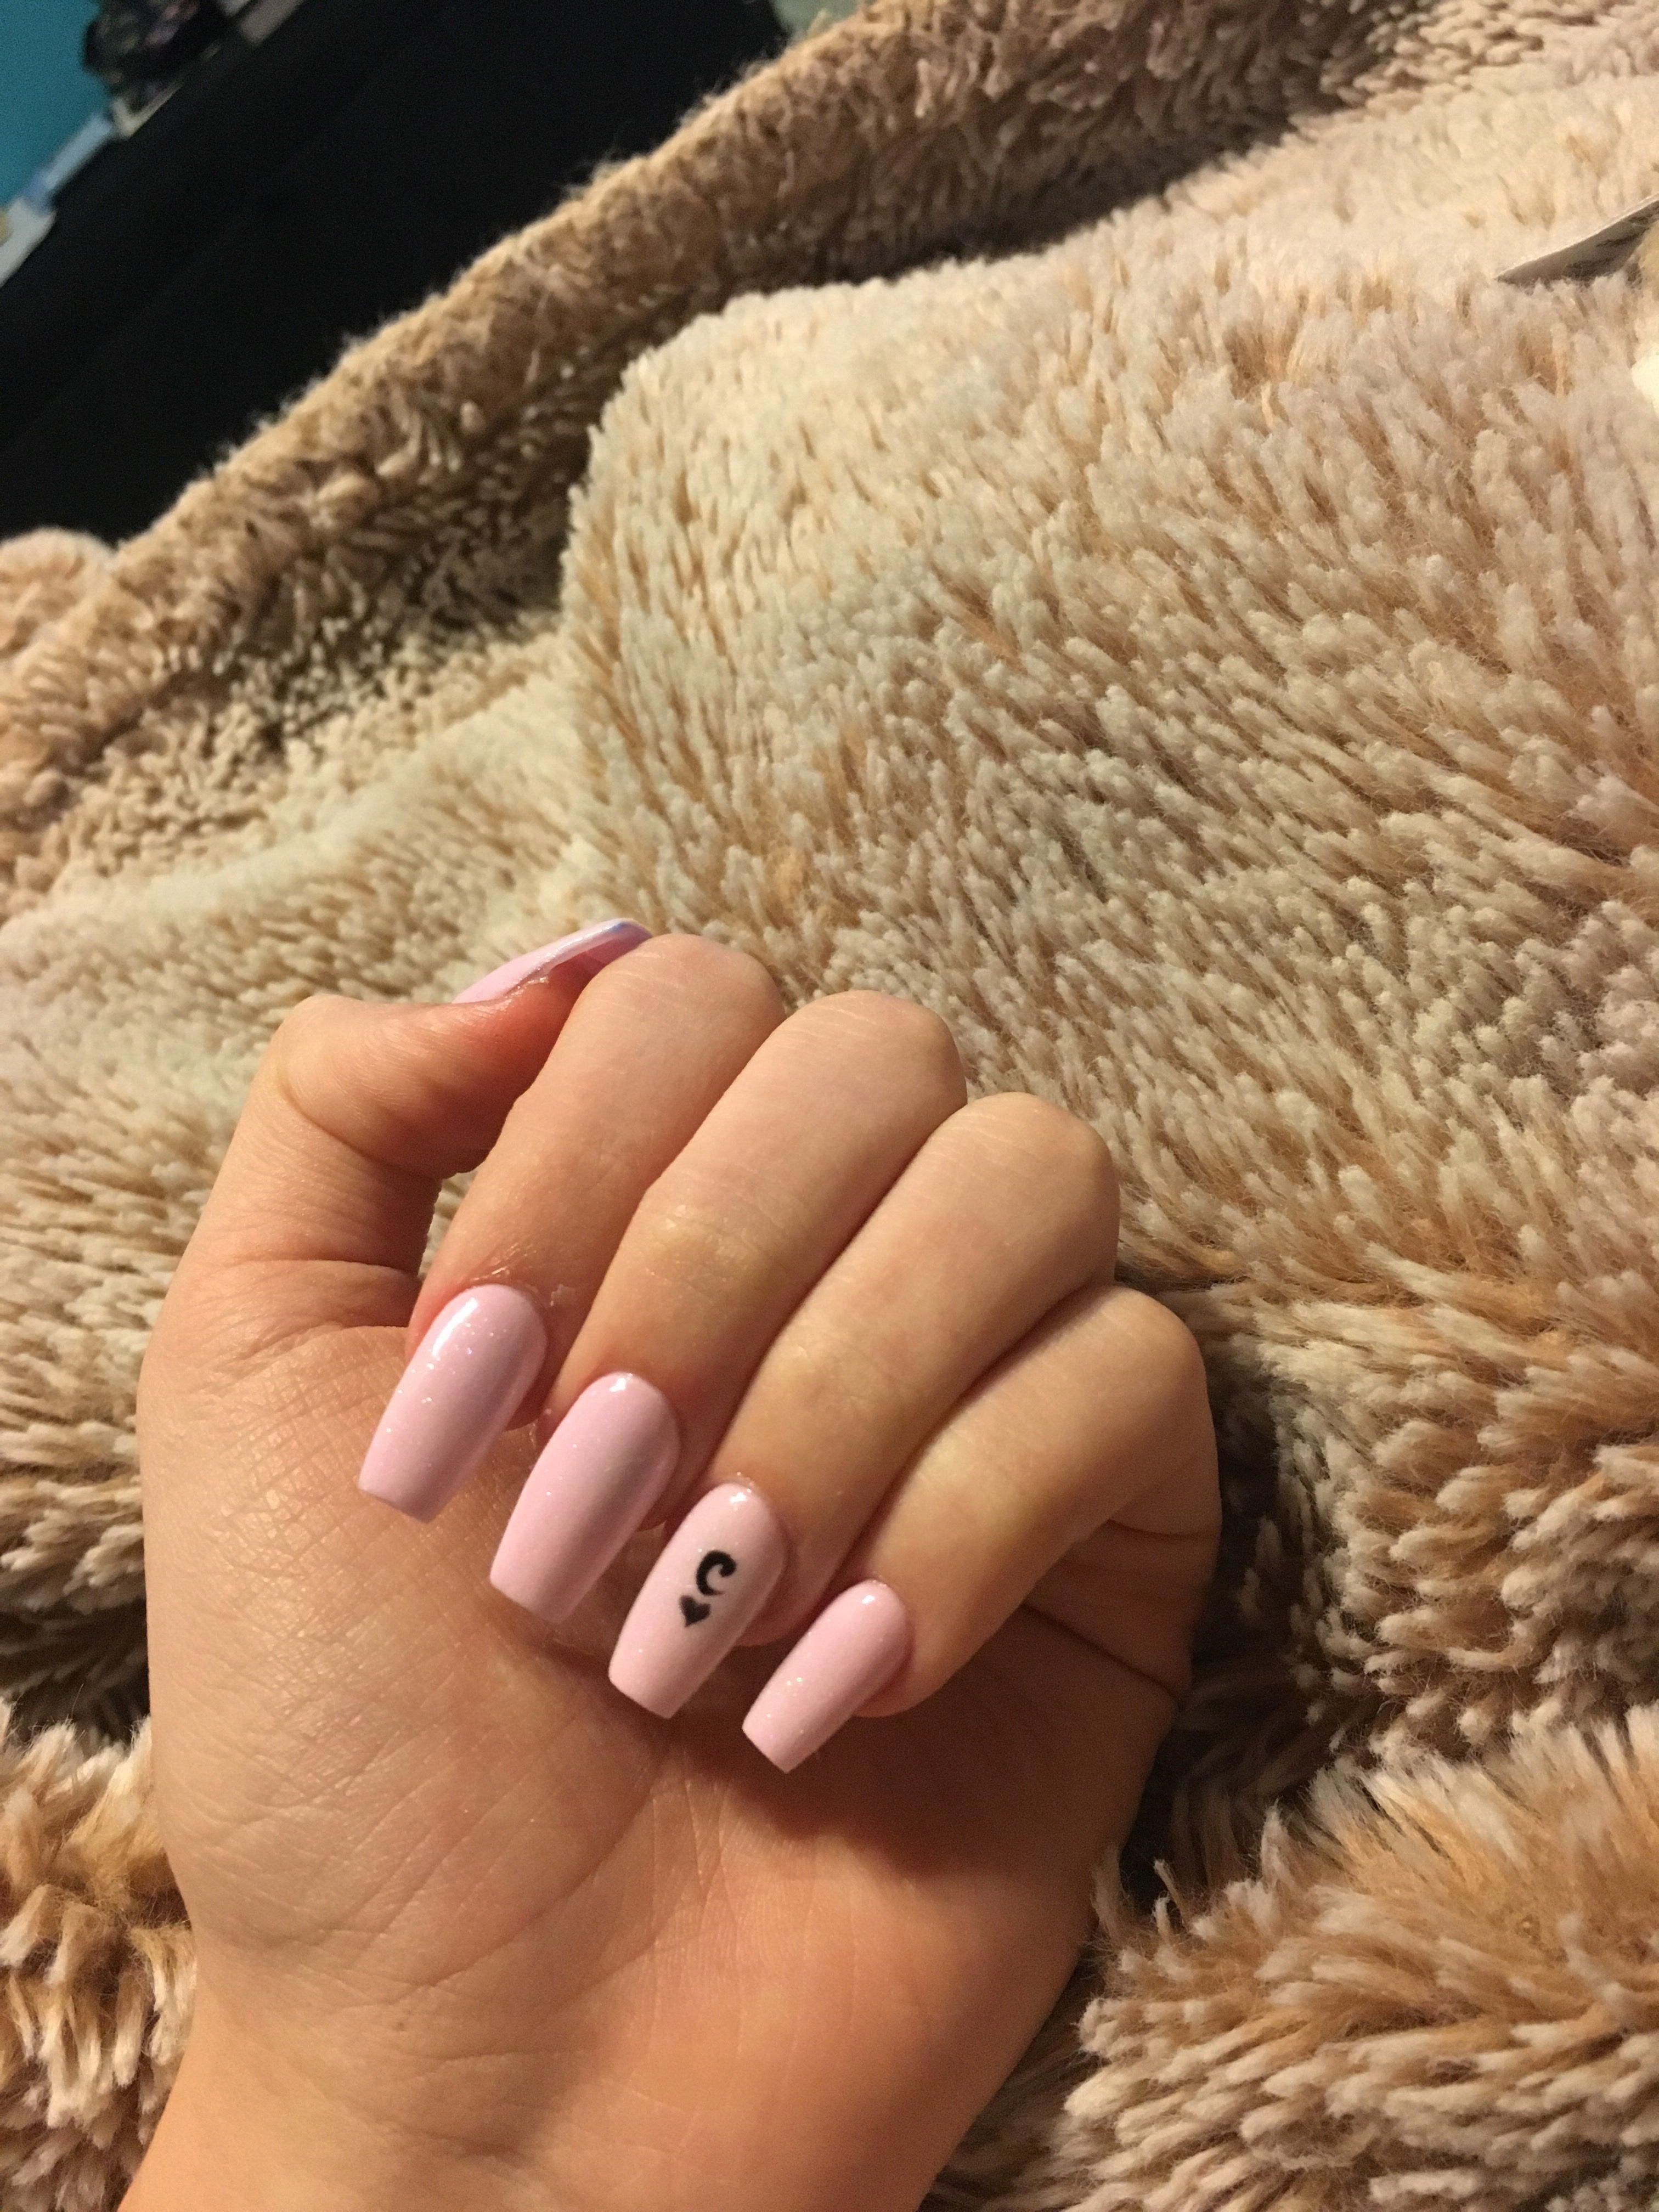 Pinknails Nails Acrylic Acrylicnails Pink Coffin Long Initial Ringfinger Naildesignscoffin Pink Acrylic Nails Square Acrylic Nails Long Acrylic Nails